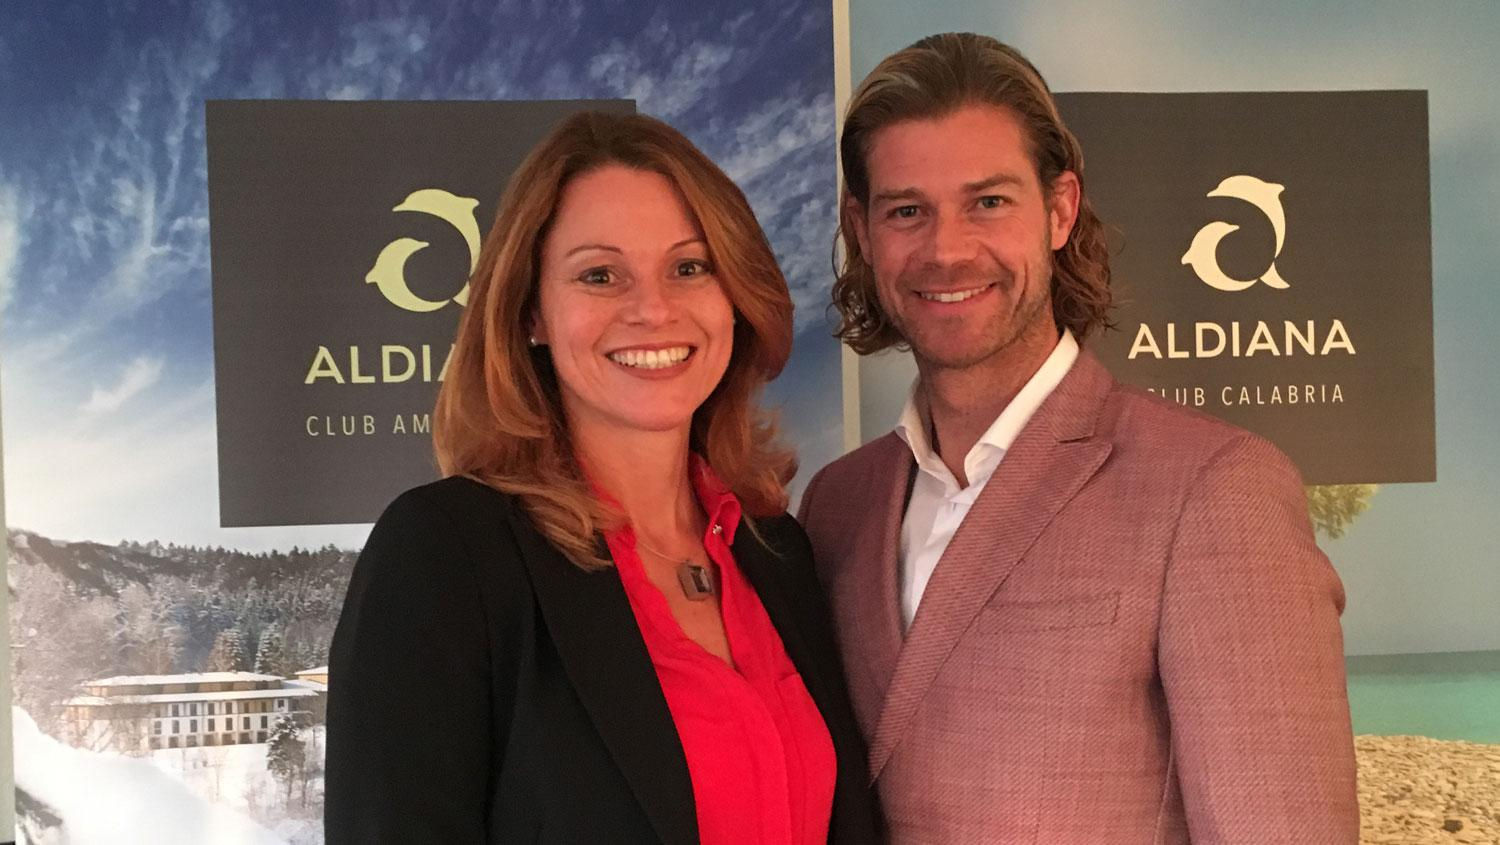 Stefanie Brandes and Patrick Brändle want to make Aldiana shine again.